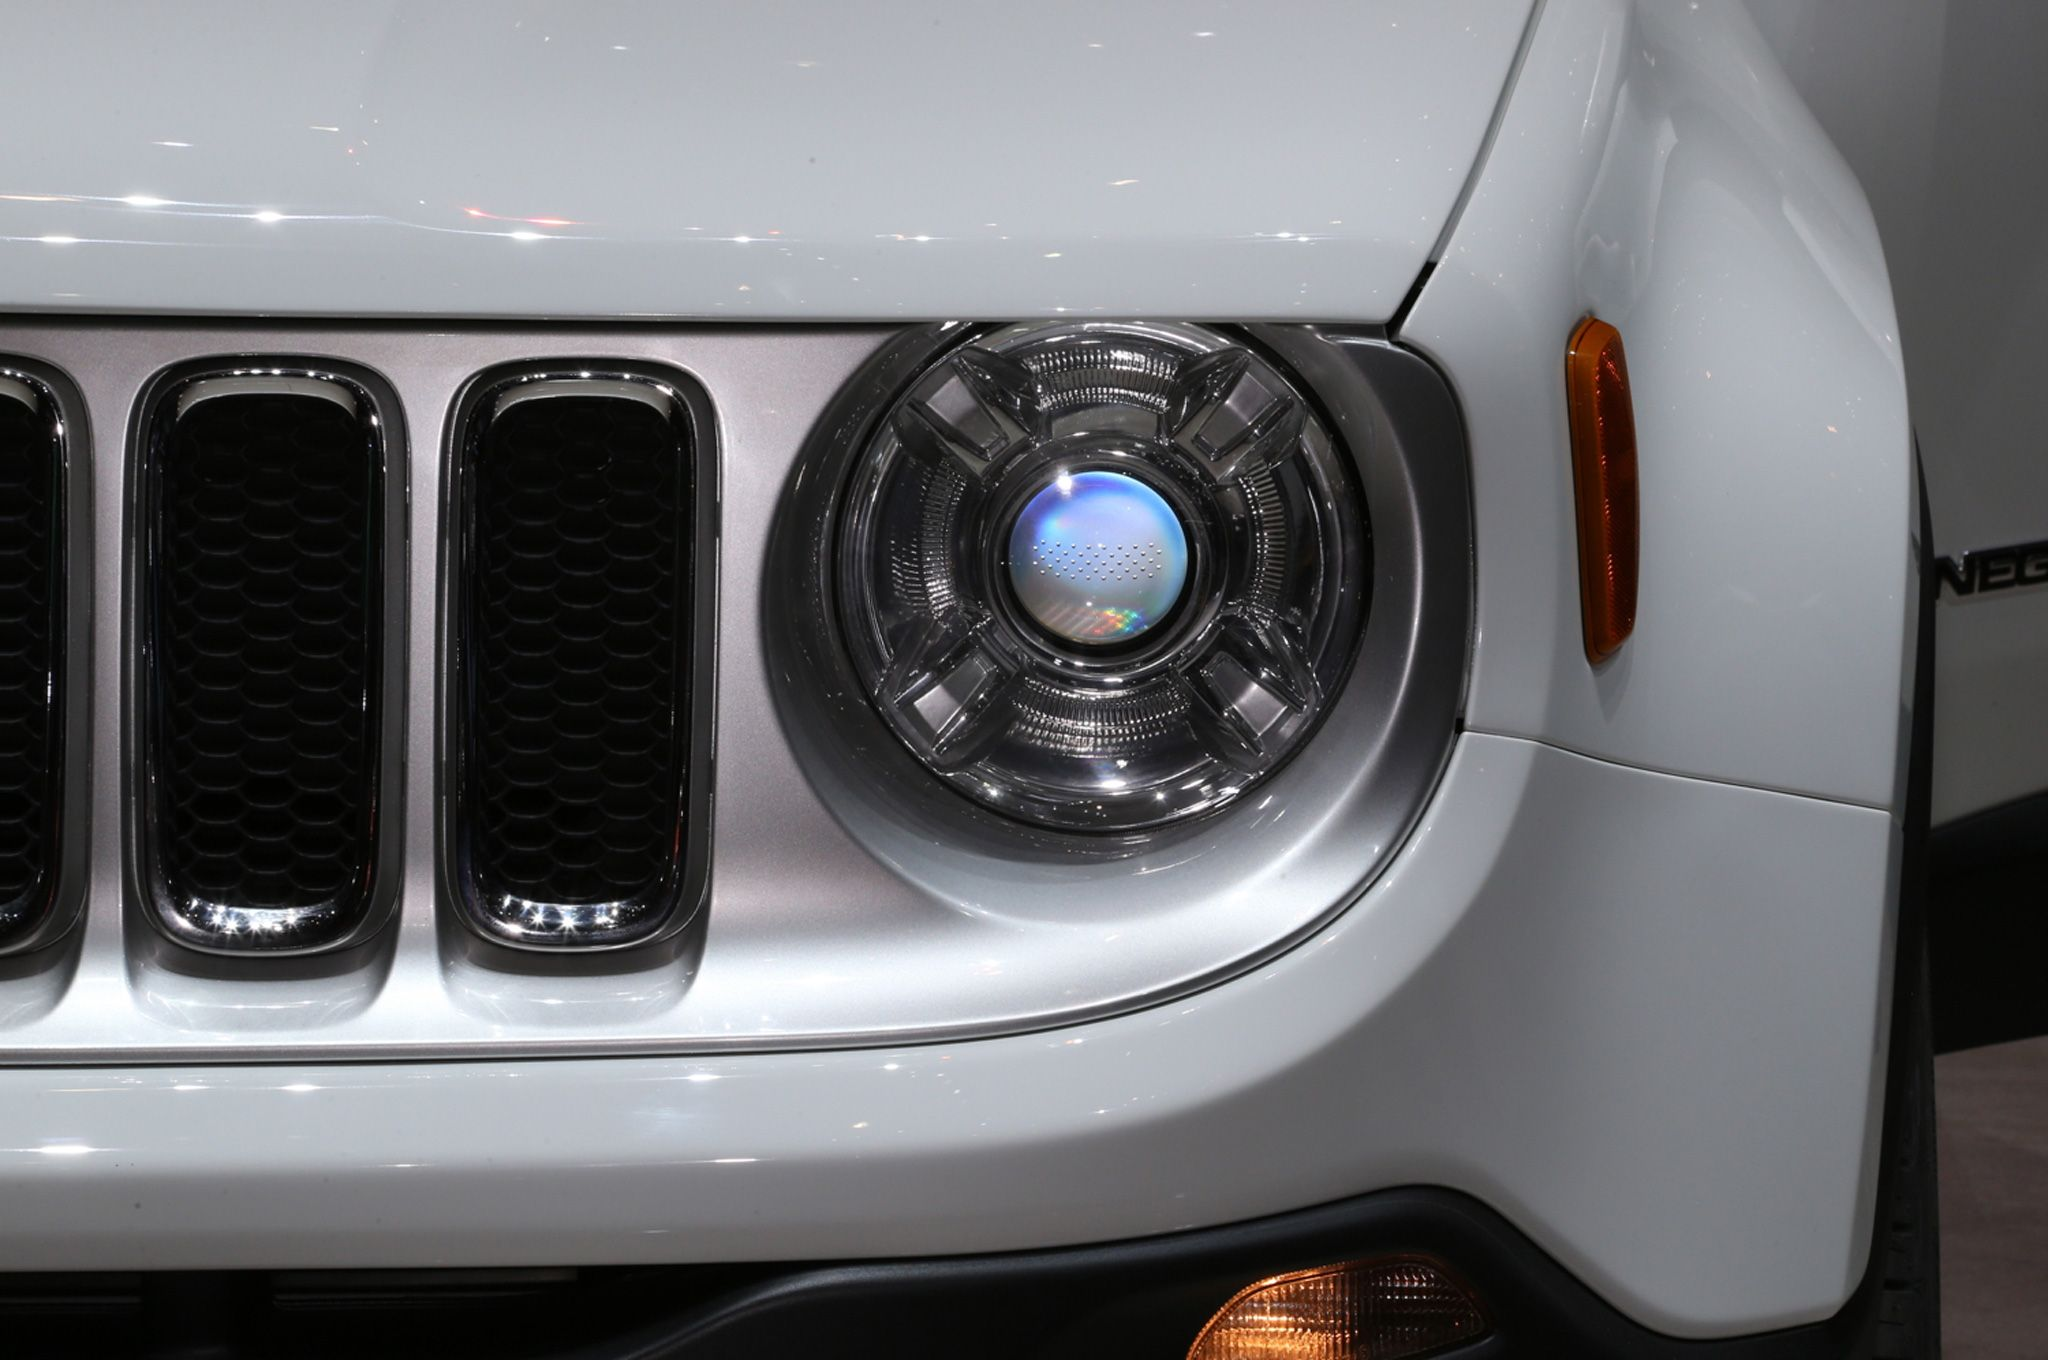 2015 Jeep Renegade Limited Headlight Wallpaper Jeep Wallpapers